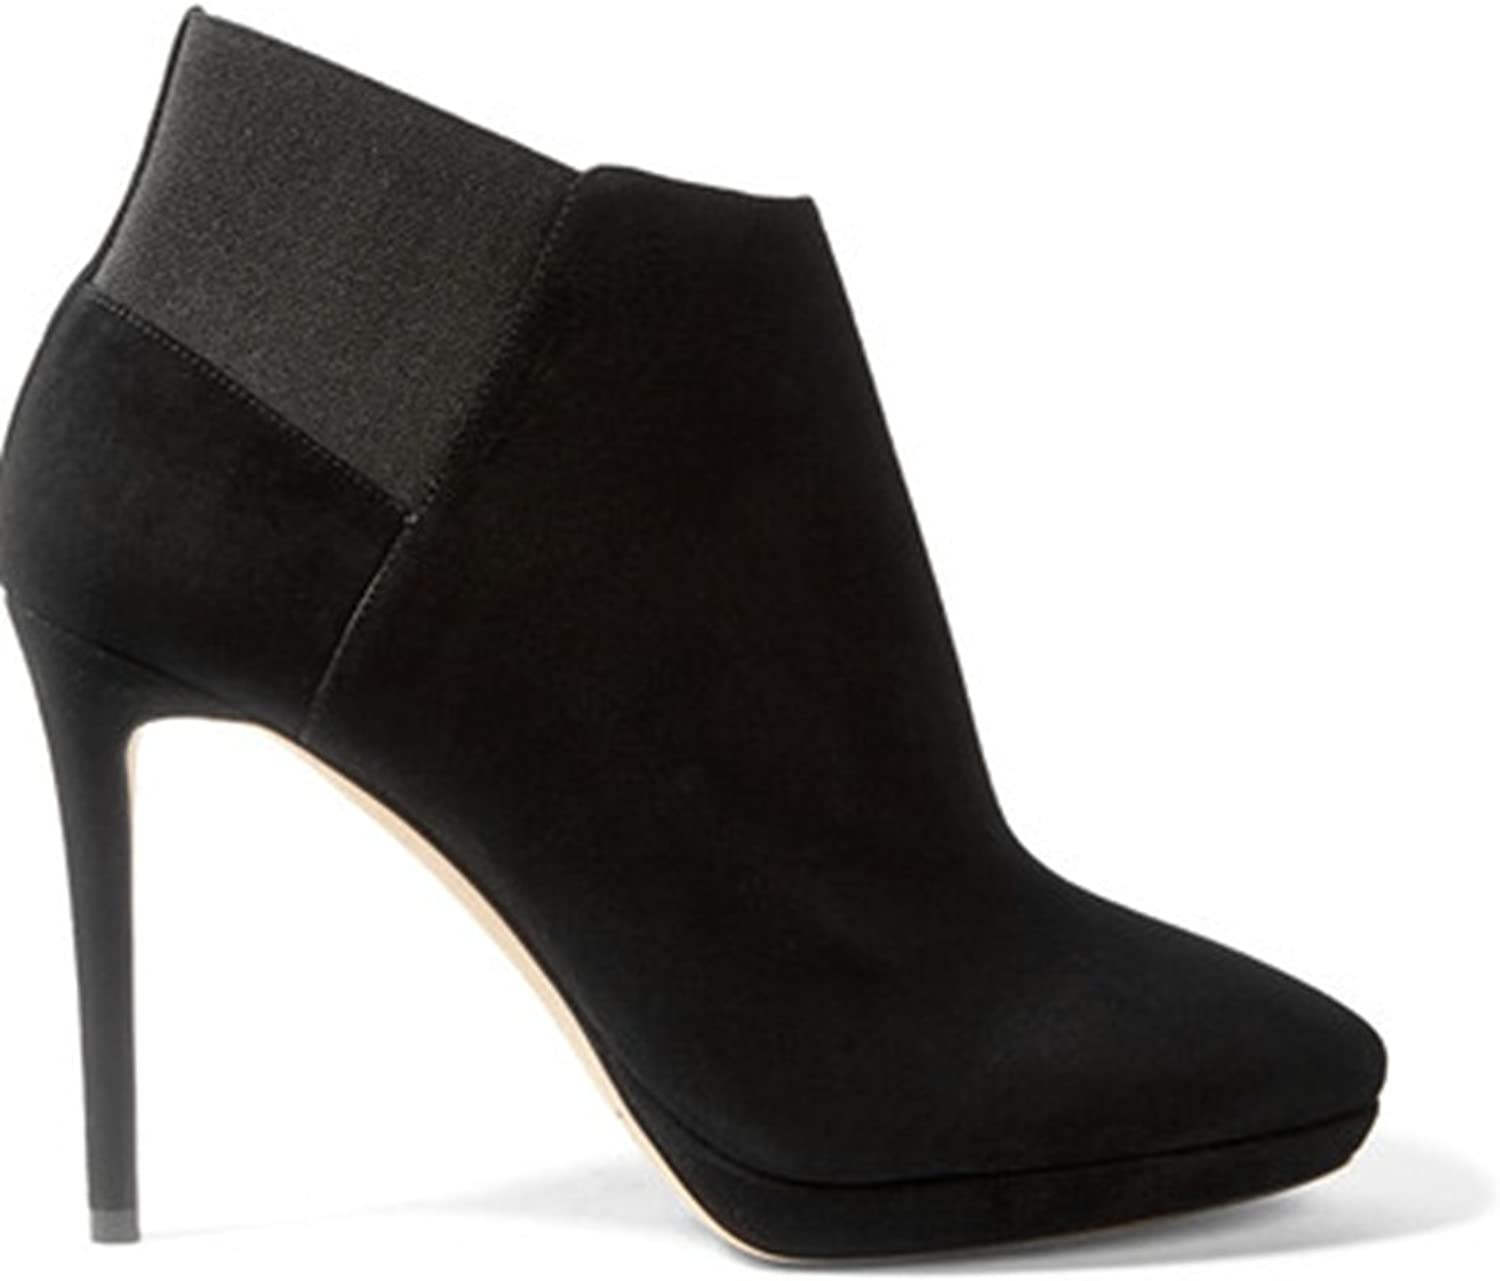 TDA Women's Fashion Pure color Suede Stiletto Ankle Boots